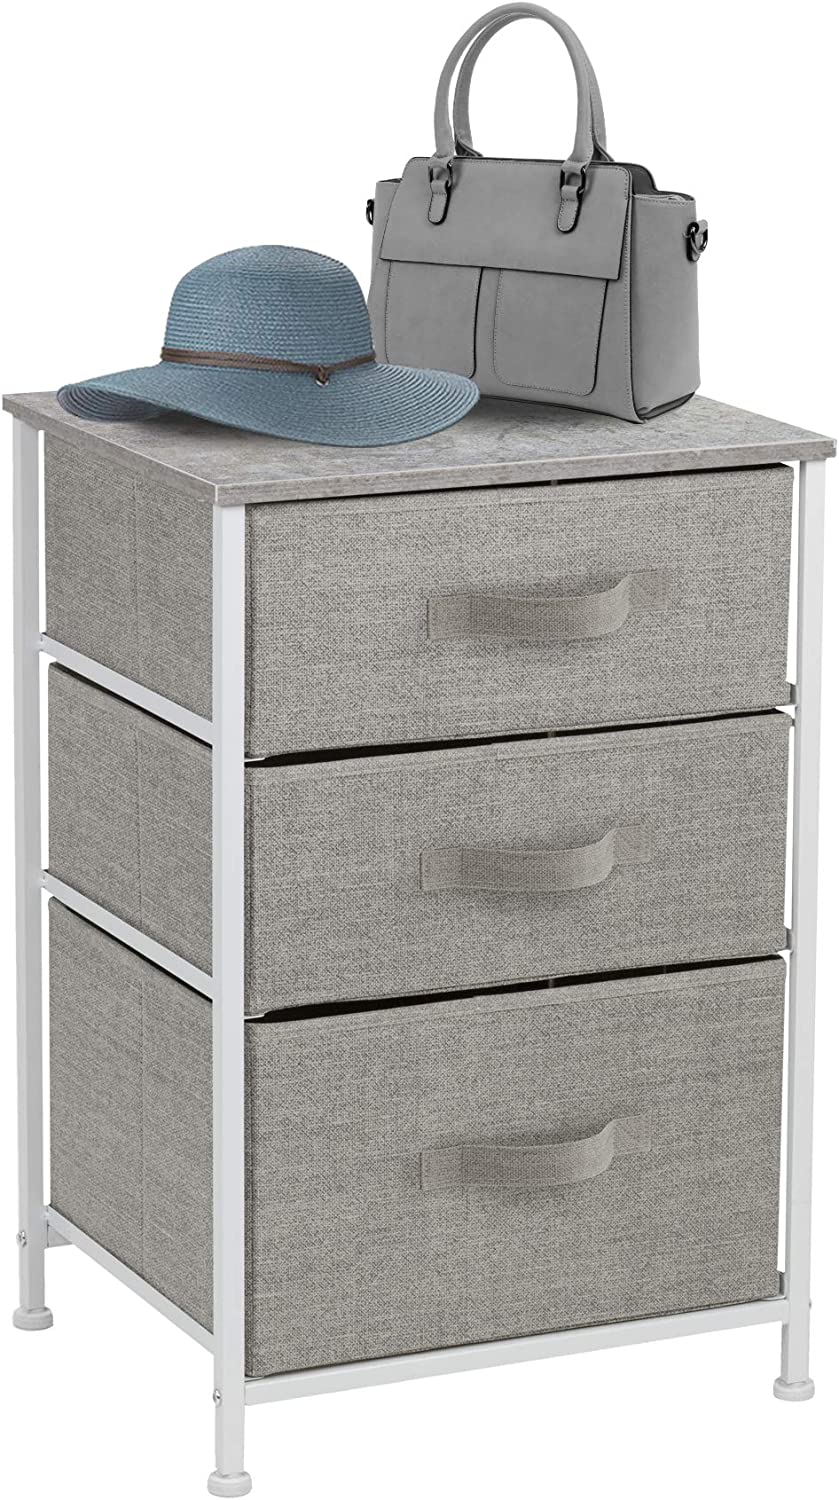 Sorbus Nightstand with 3 Drawers - Bedside Furniture & Accent End Table Chest for Home, Bedroom Accessories, Office, College Dorm, Steel Frame, Wood Top, Easy Pull Fabric Bins (Gray): Kitchen & Dining